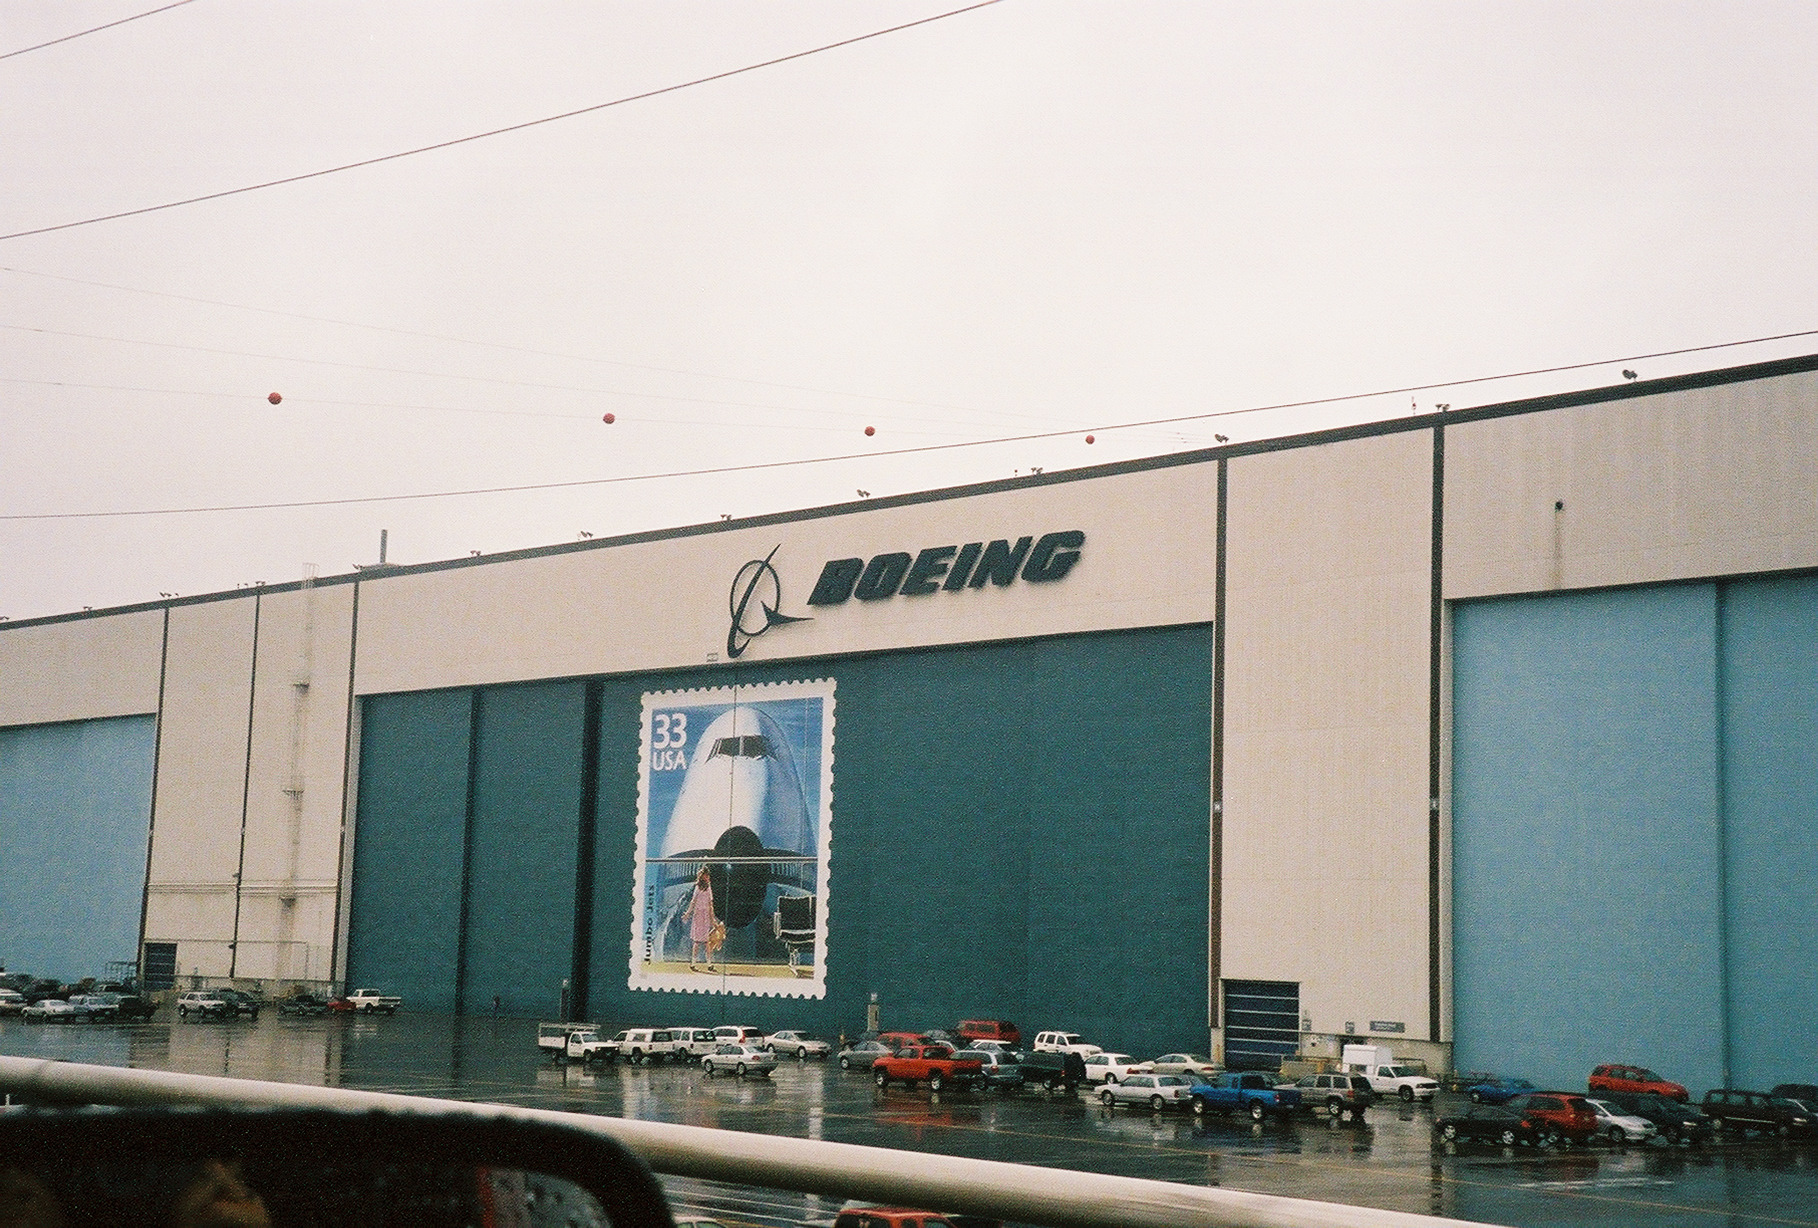 The Boeing Factory